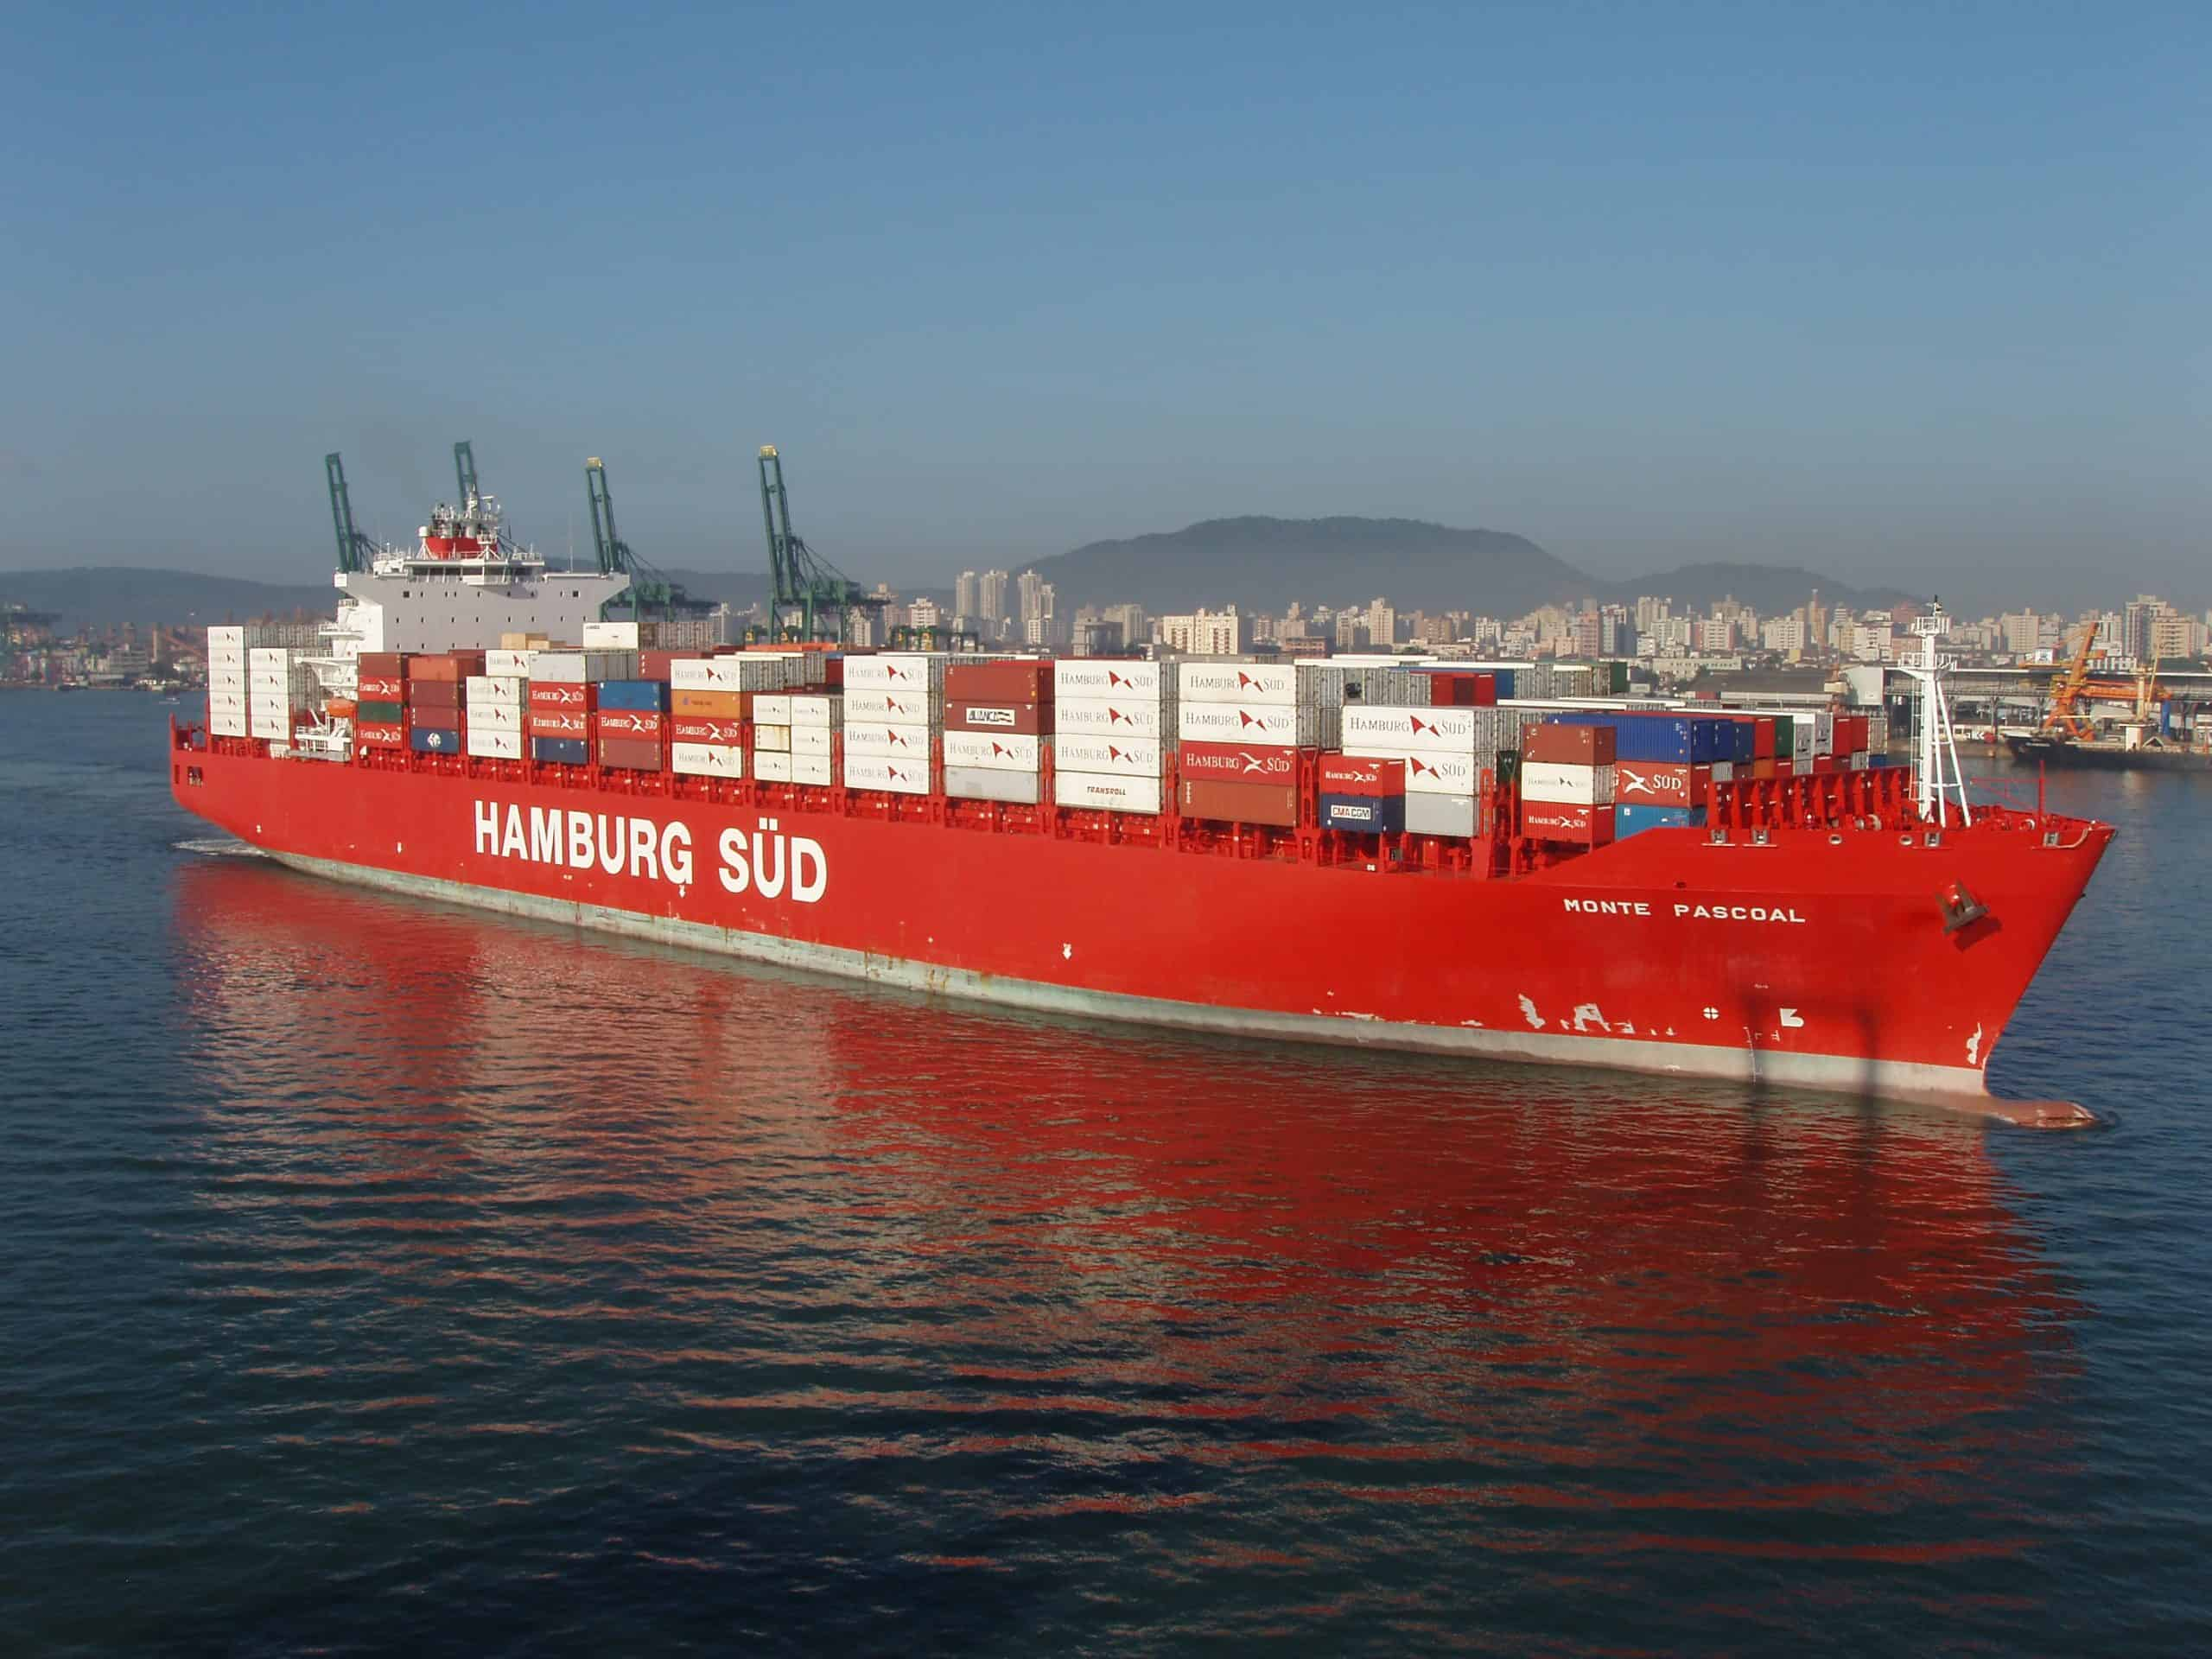 Hamburg Süd enters East-West trade through UASC co-operation